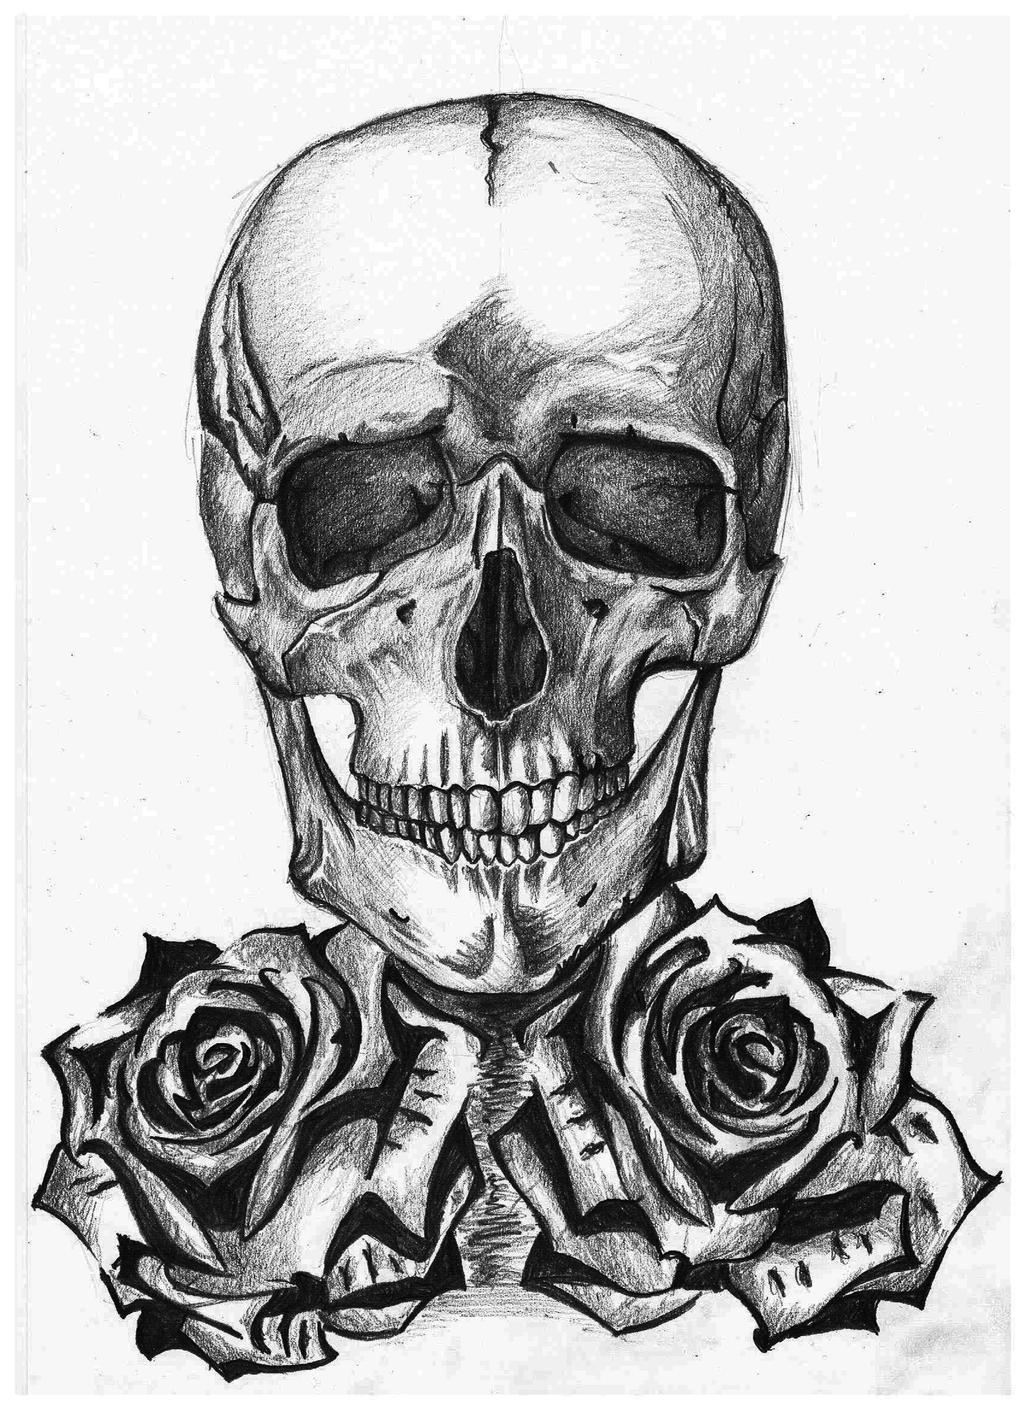 It's just a picture of Resource Drawing Of Skulls And Roses